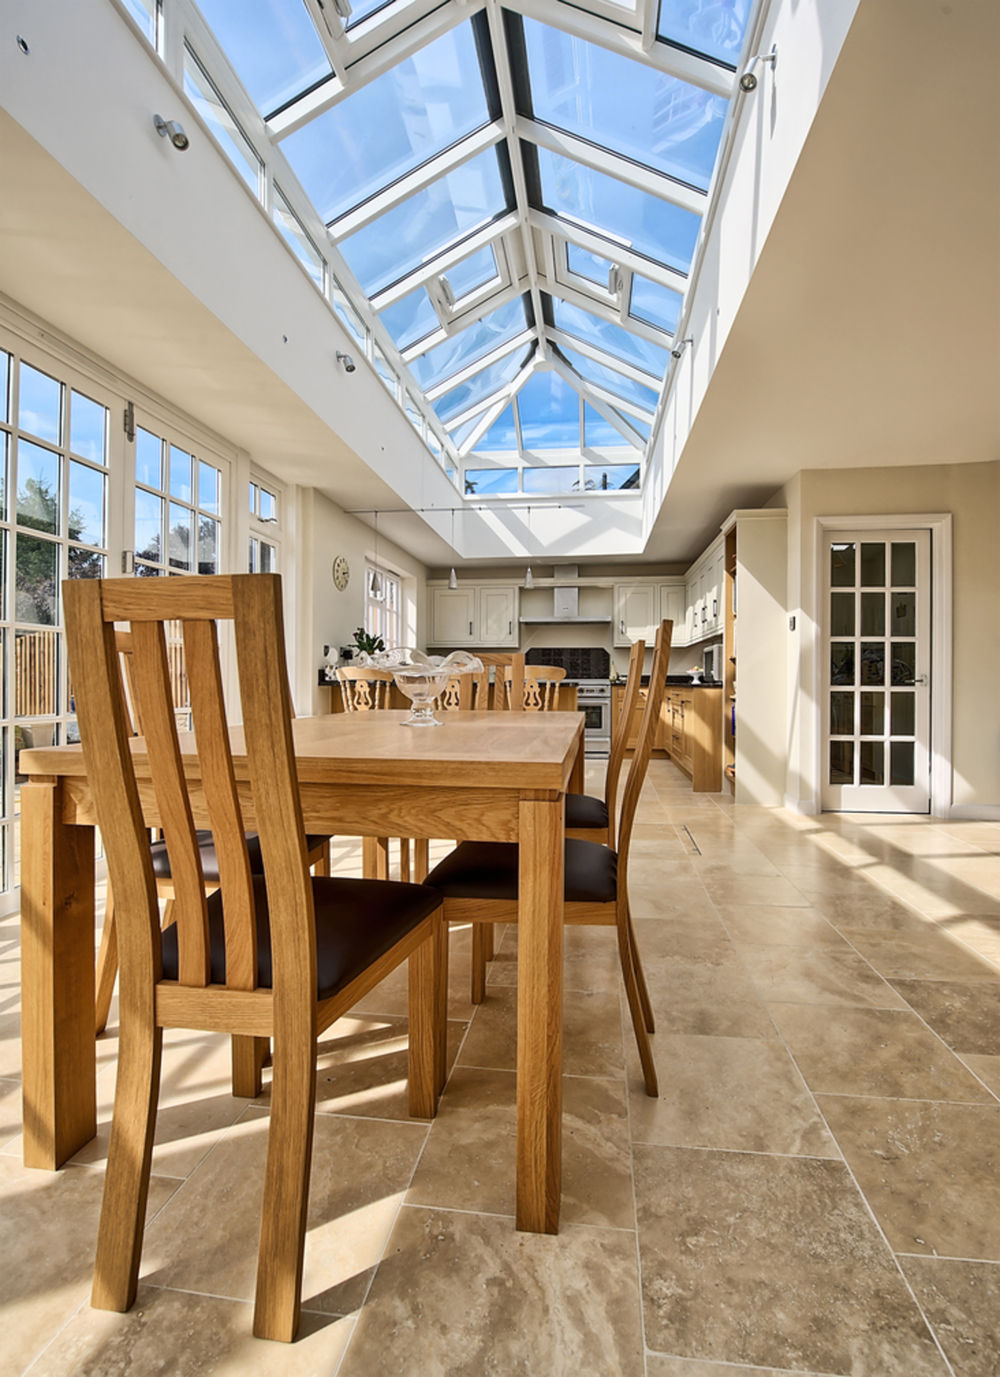 Skylight and dining room table of a house extension by Harvey Norman Architects St Albans